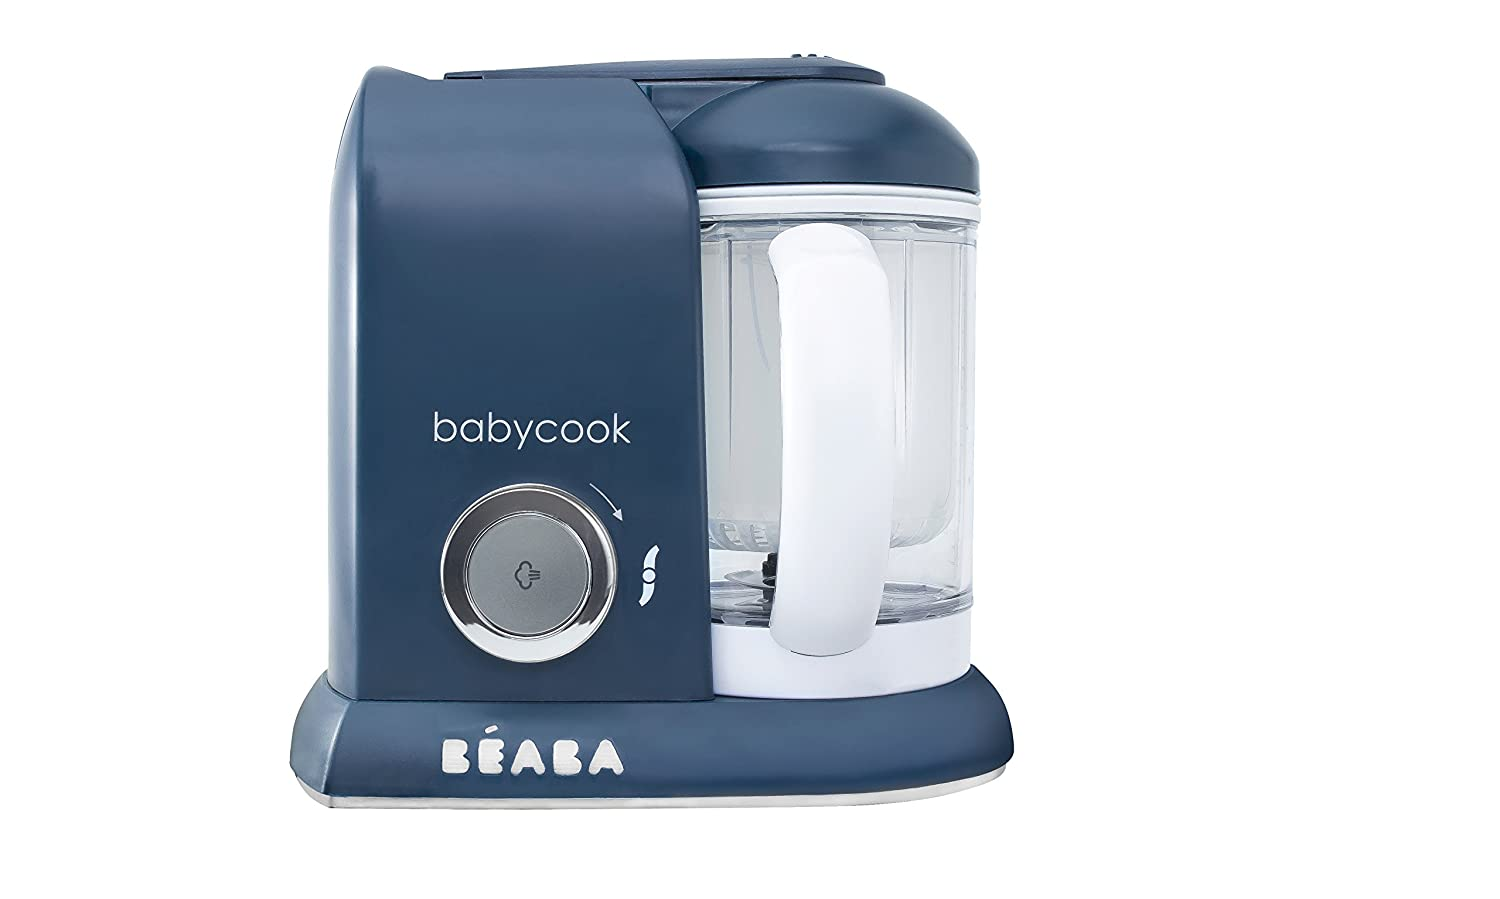 BEABA Babycook 4 in 1 Steam Cooker and Blender Navy